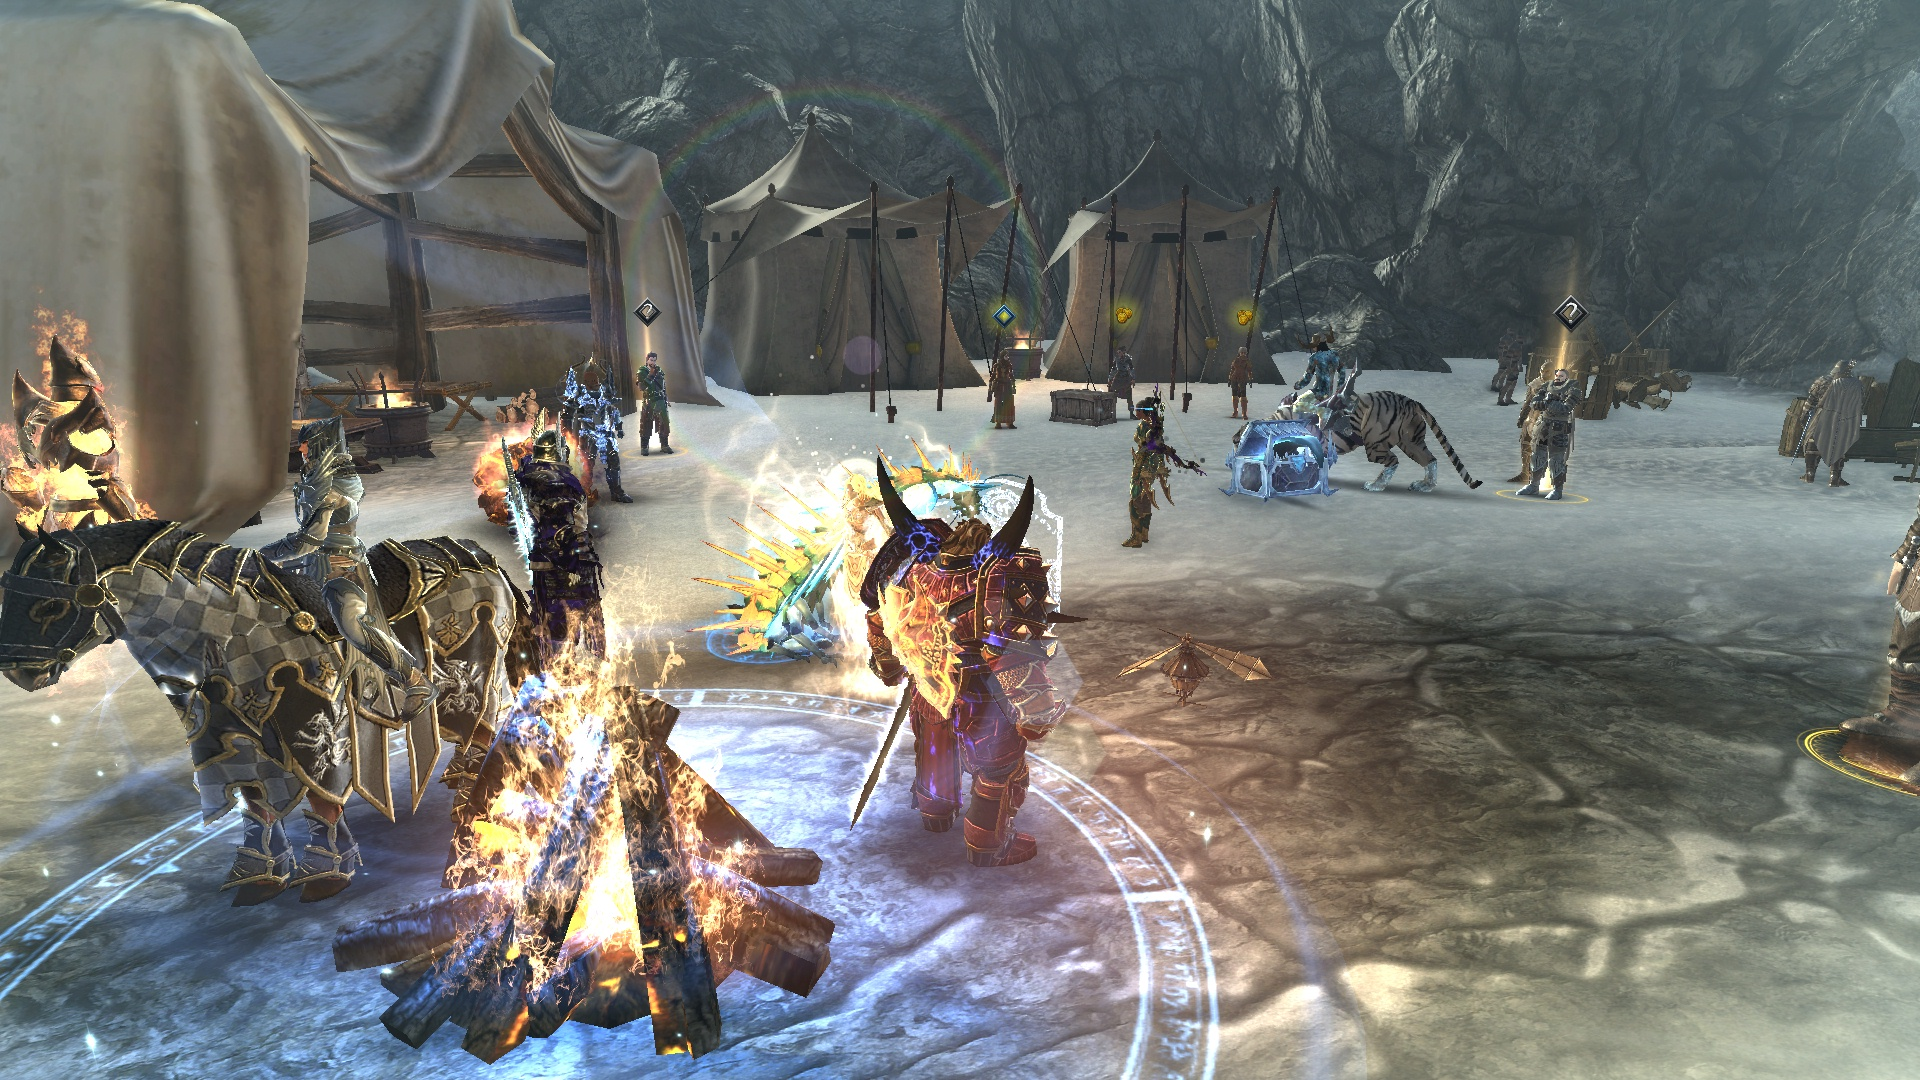 ddmsrealm-neverwinter-storm-kings-thunder-cold-run-campfire